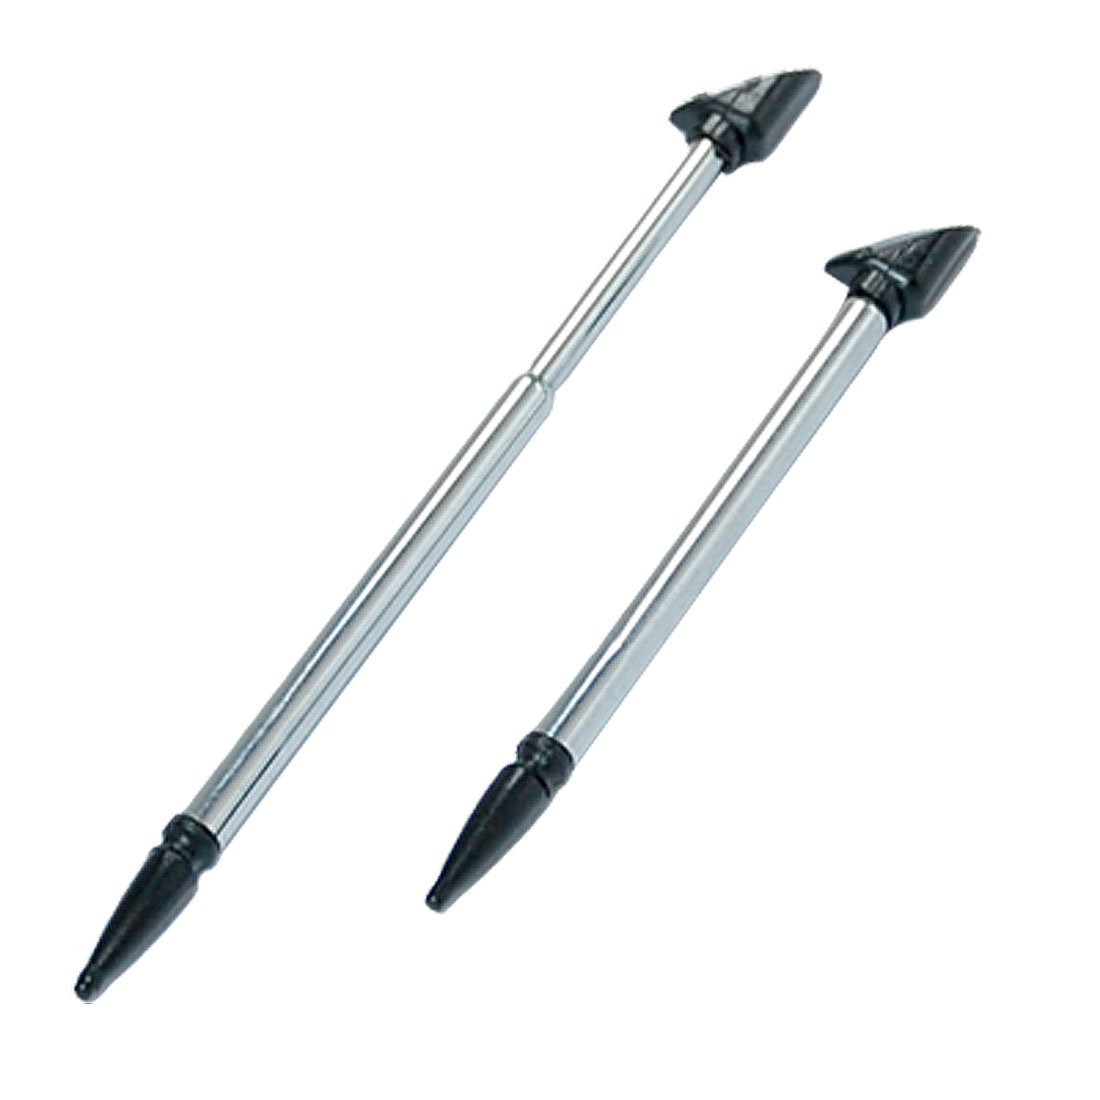 2 Pcs Retractable Touch Pen Stylus for Moto Motorola A3000